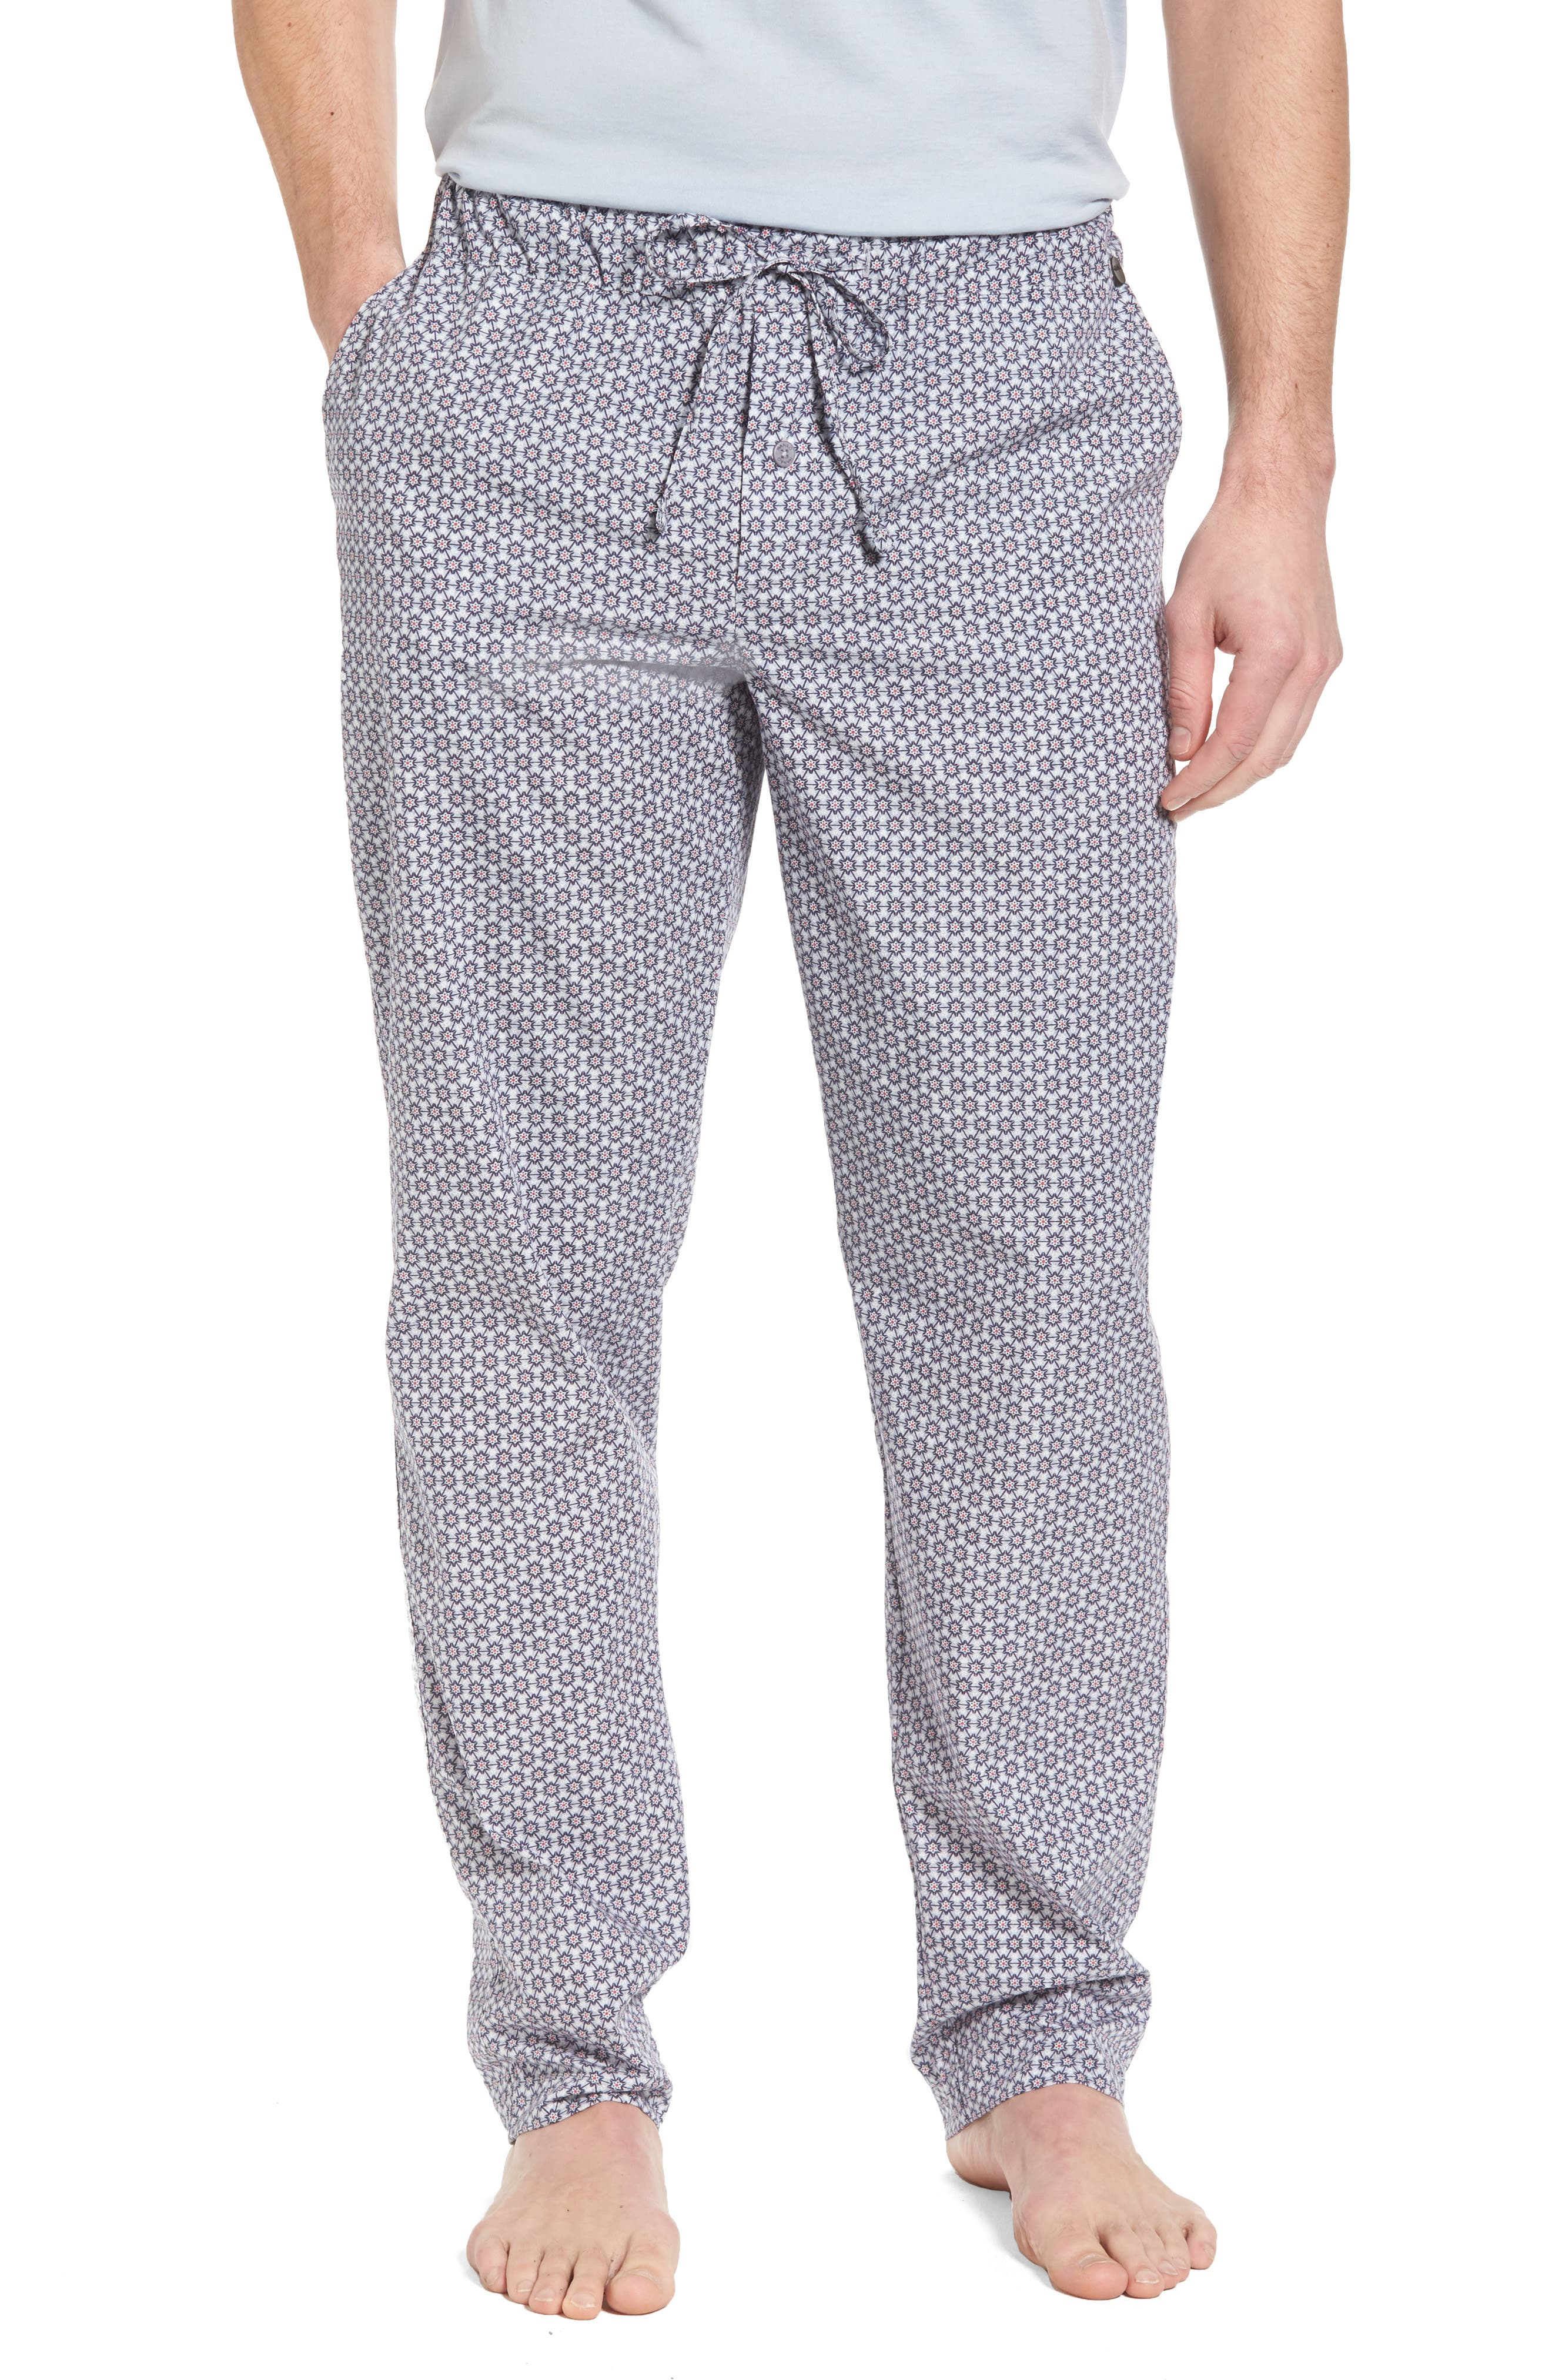 Night & Day Woven Lounge Pants,                             Main thumbnail 1, color,                             Classic Flower Print